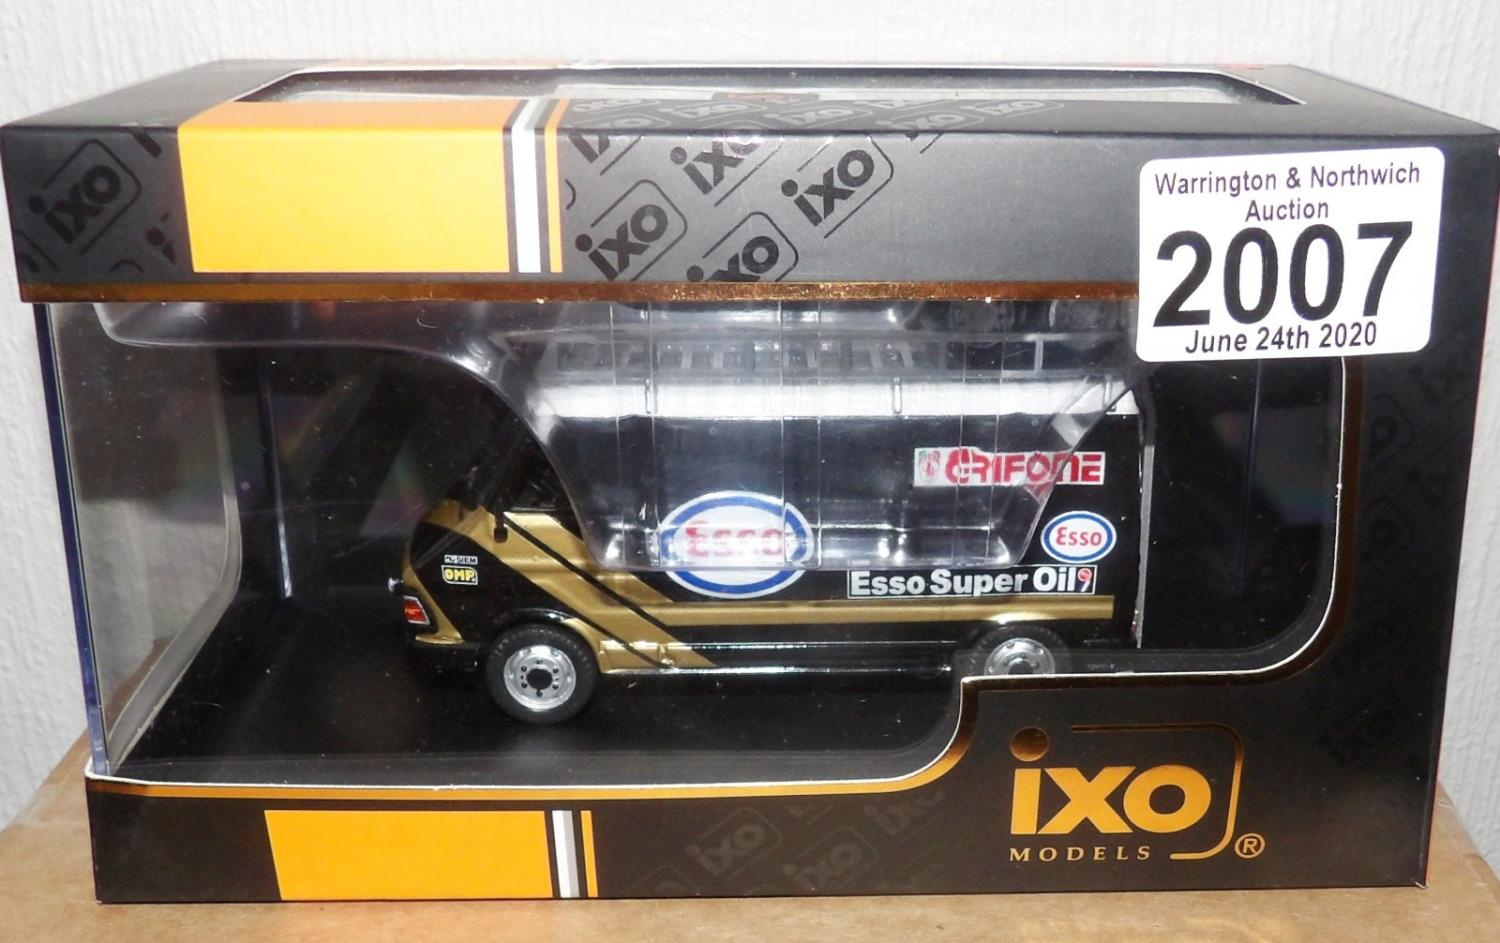 Lot 2007 - IXO 1.43 Scale FIAT 242 (Assistance ESSO Grifone) 1986. P&P Group 1 (£14+VAT for the first lot